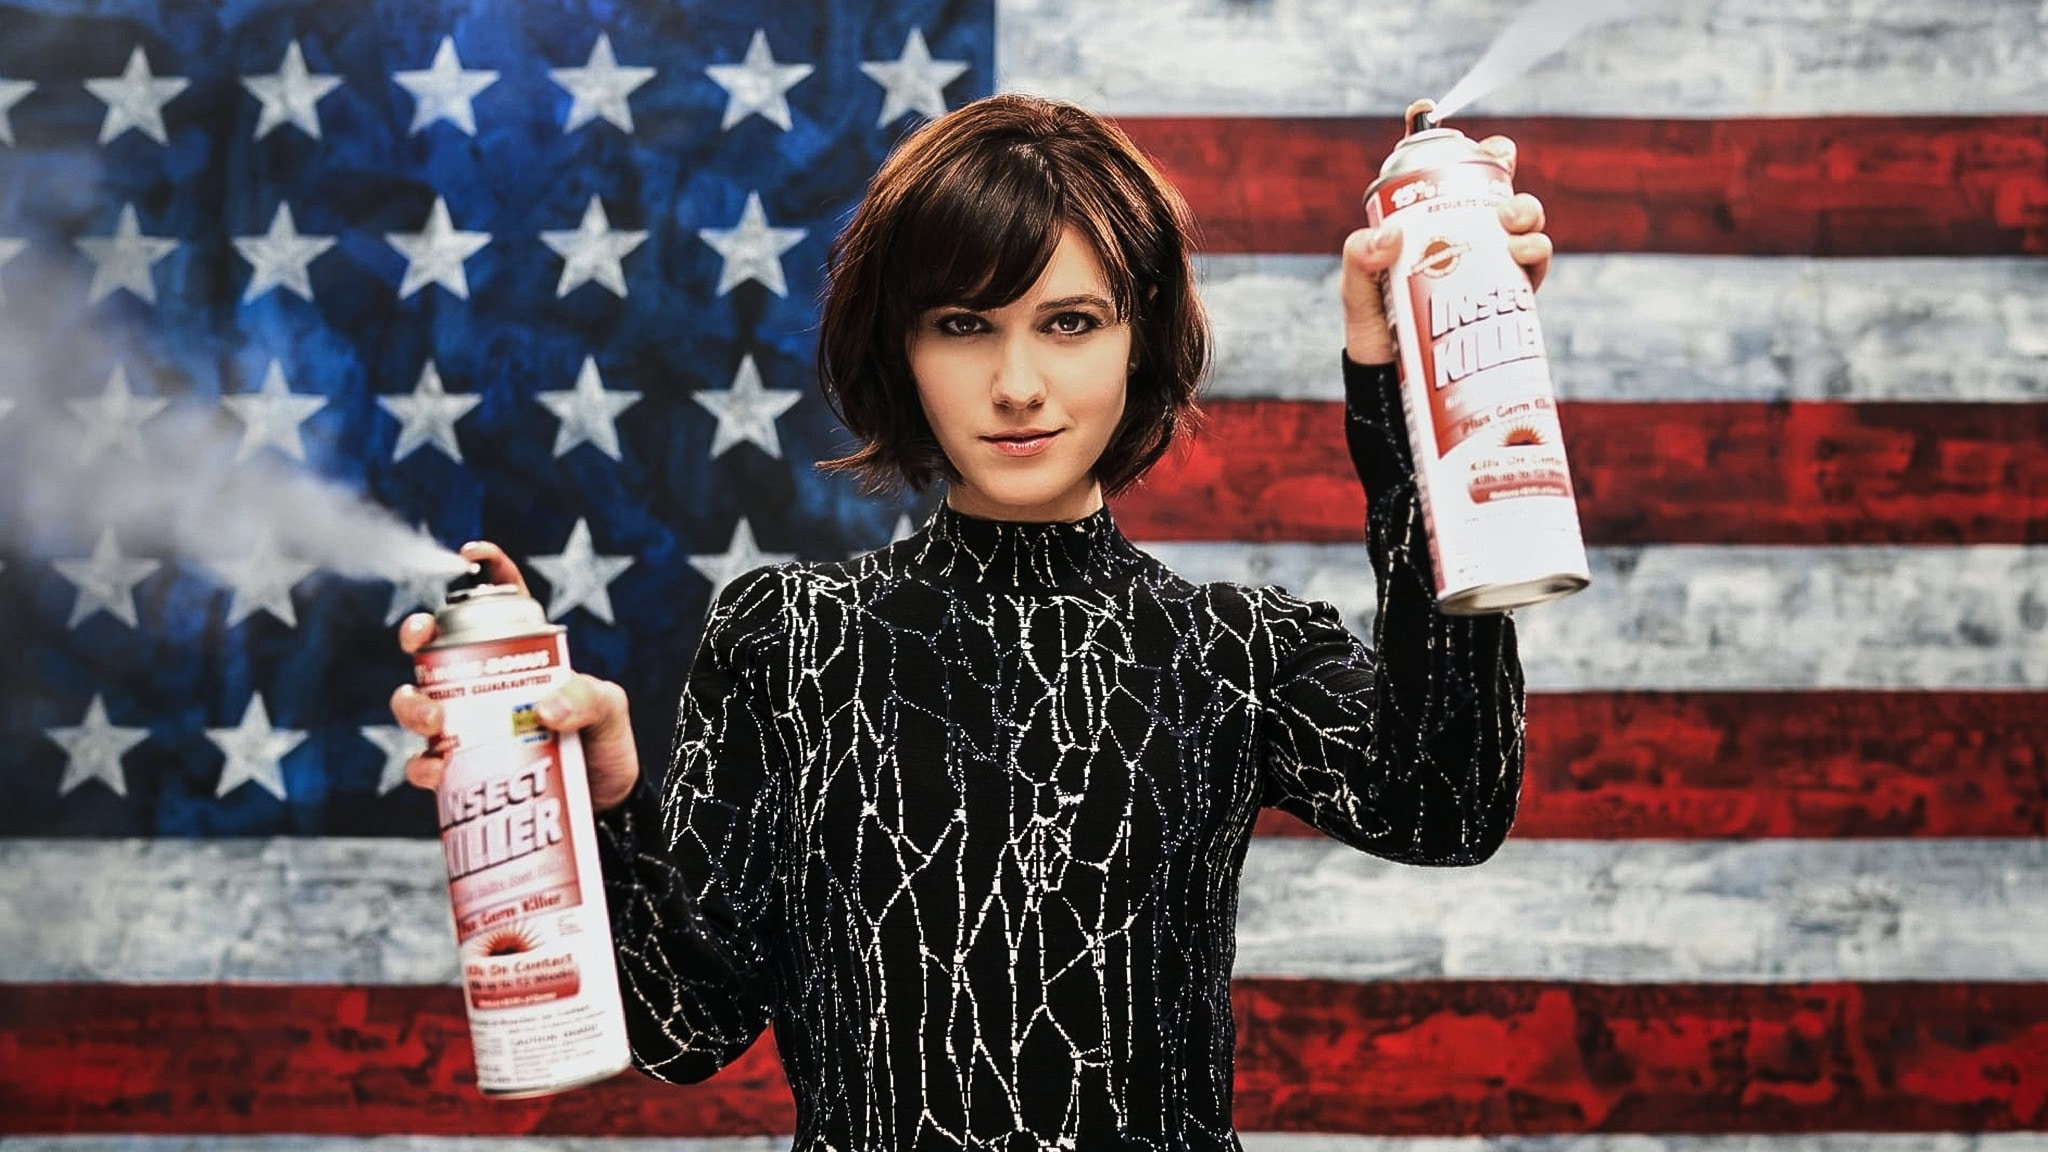 Rai 2 Braindead - Alieni a Washington S1E4 - Unica via